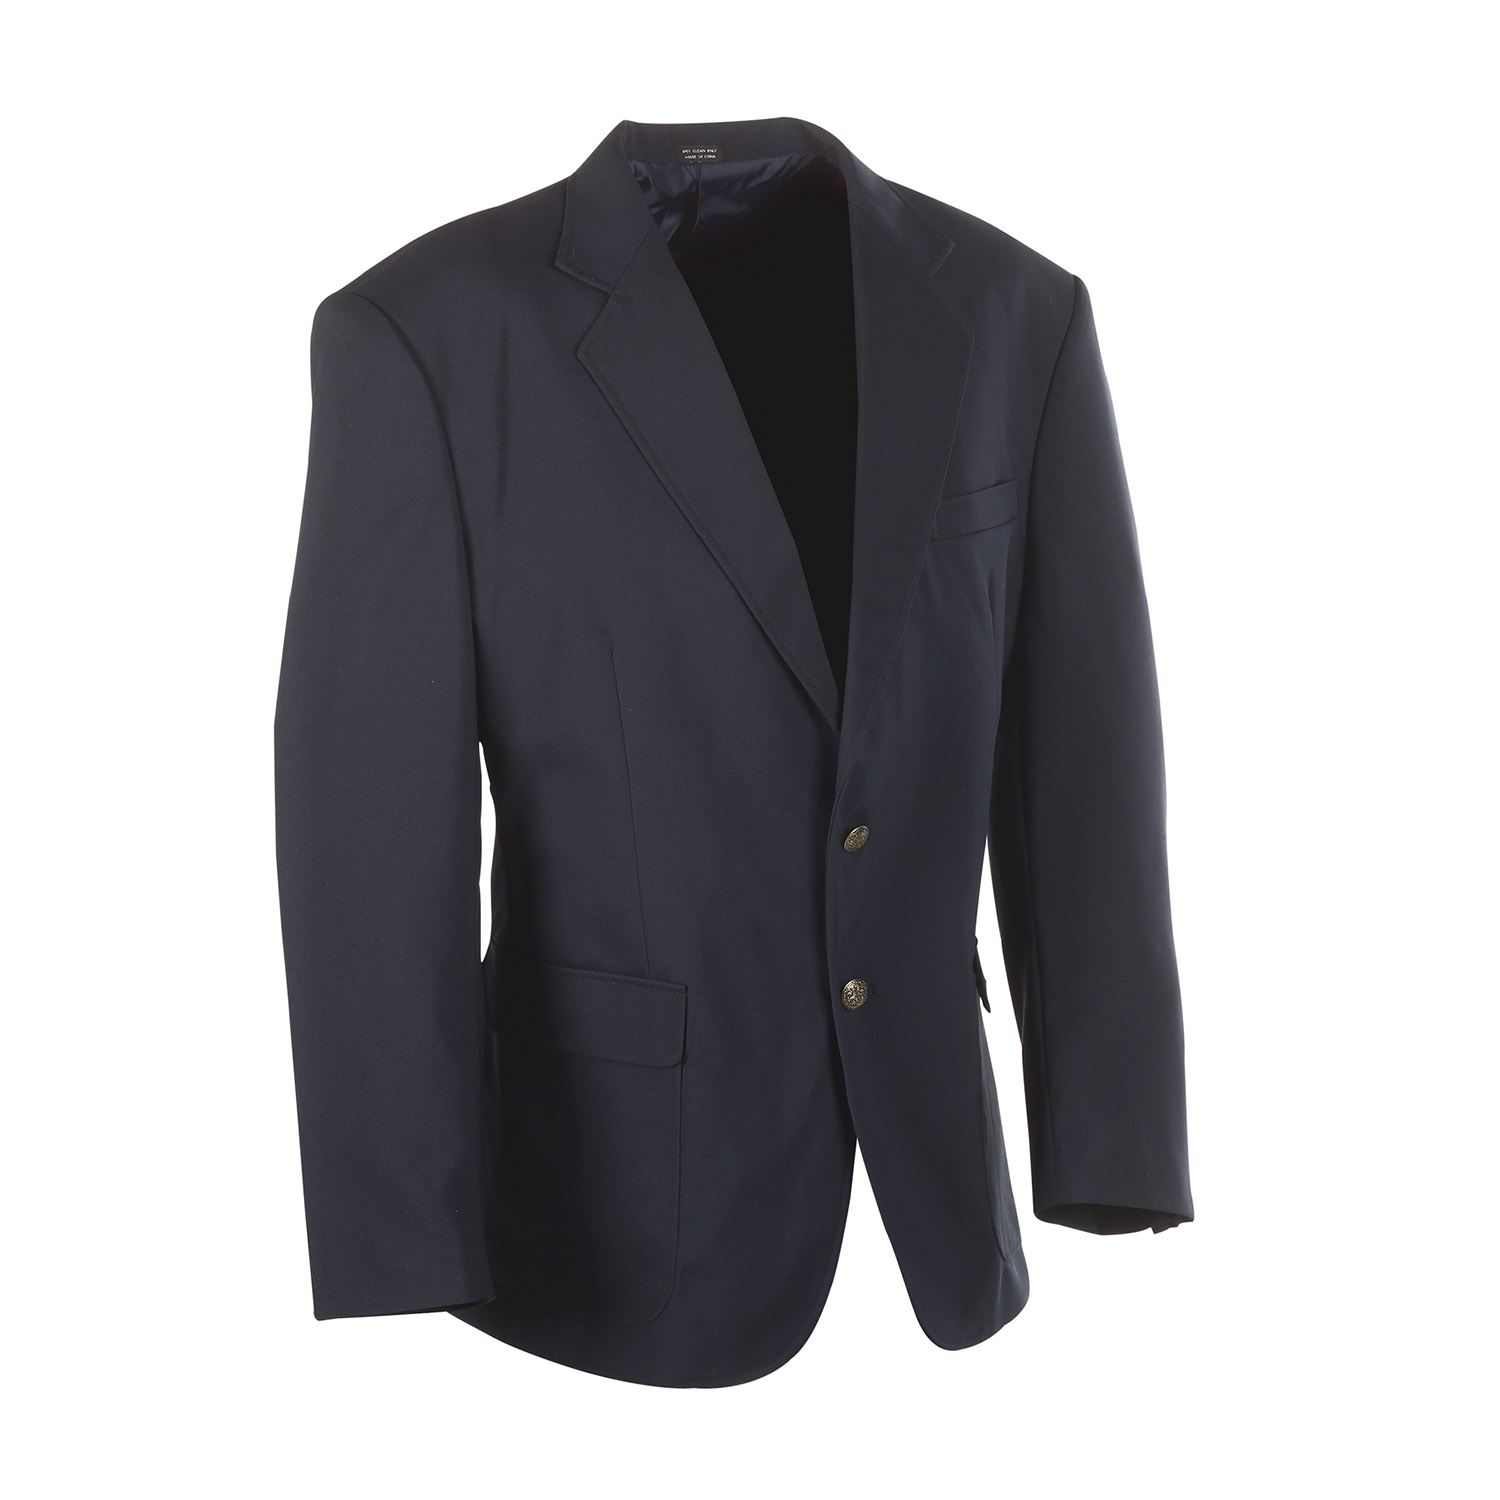 LawPro Men's Polyester Uniform Blazer